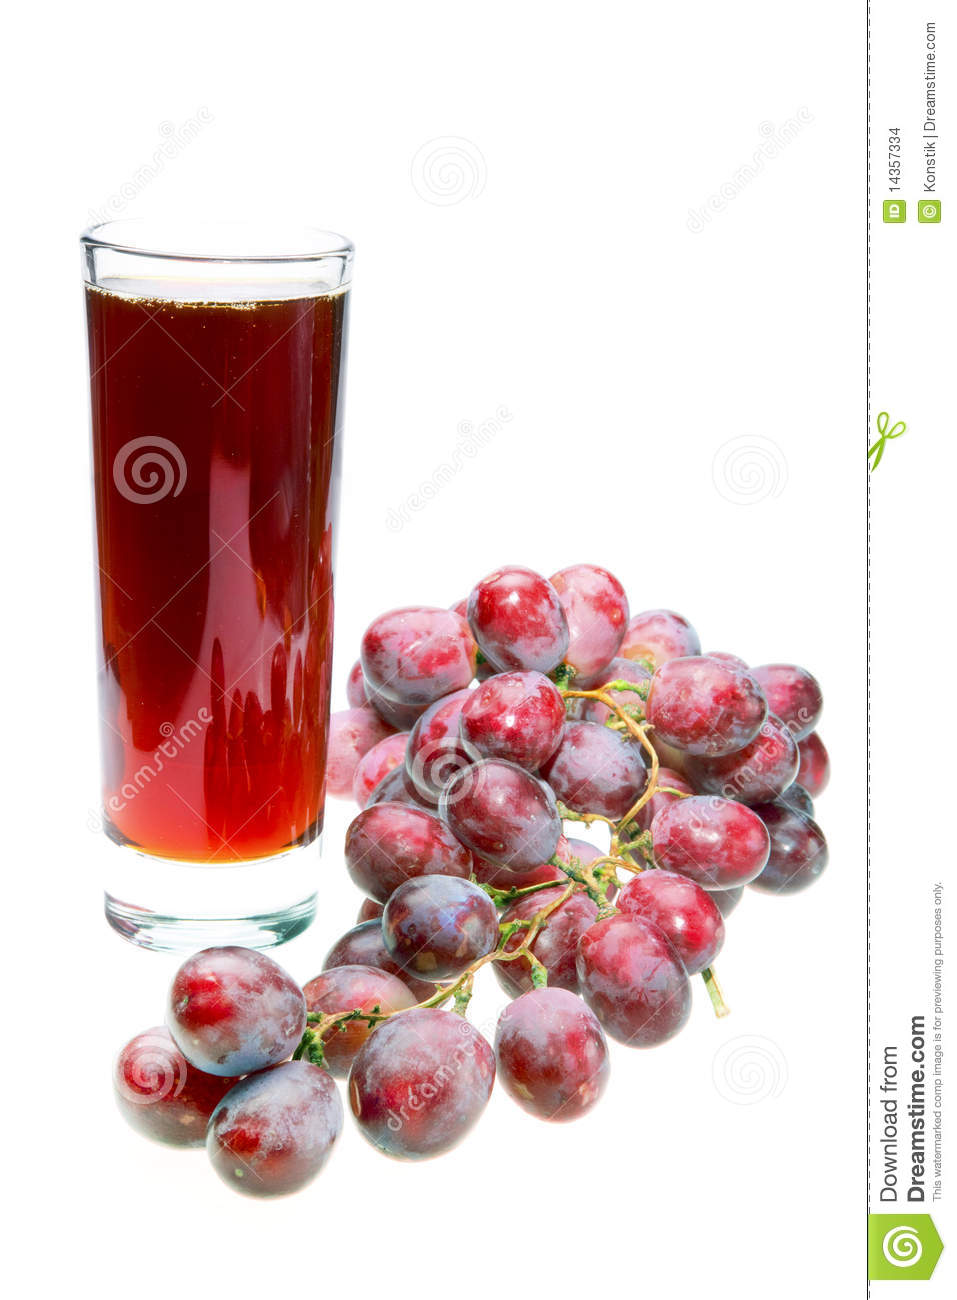 Grape Cluster And Juice In Glass Stock Images - Image ...